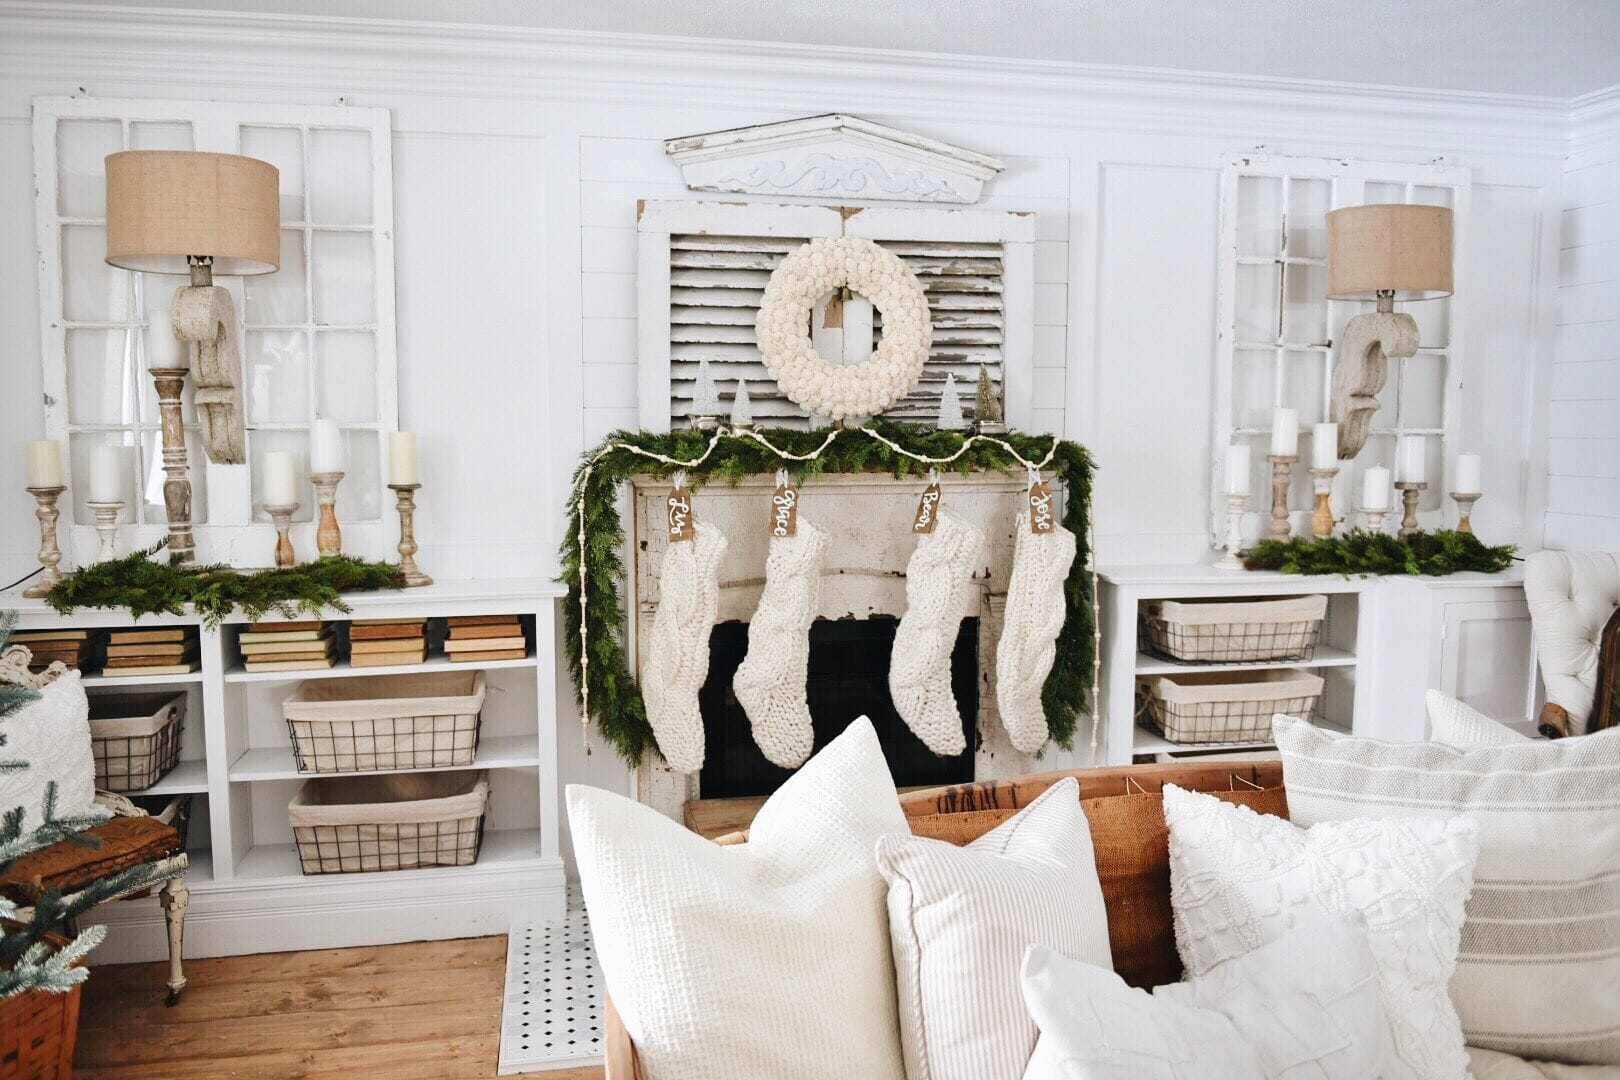 How to decorate a mantel for christmas, One Mantel…Two Christmas Styles